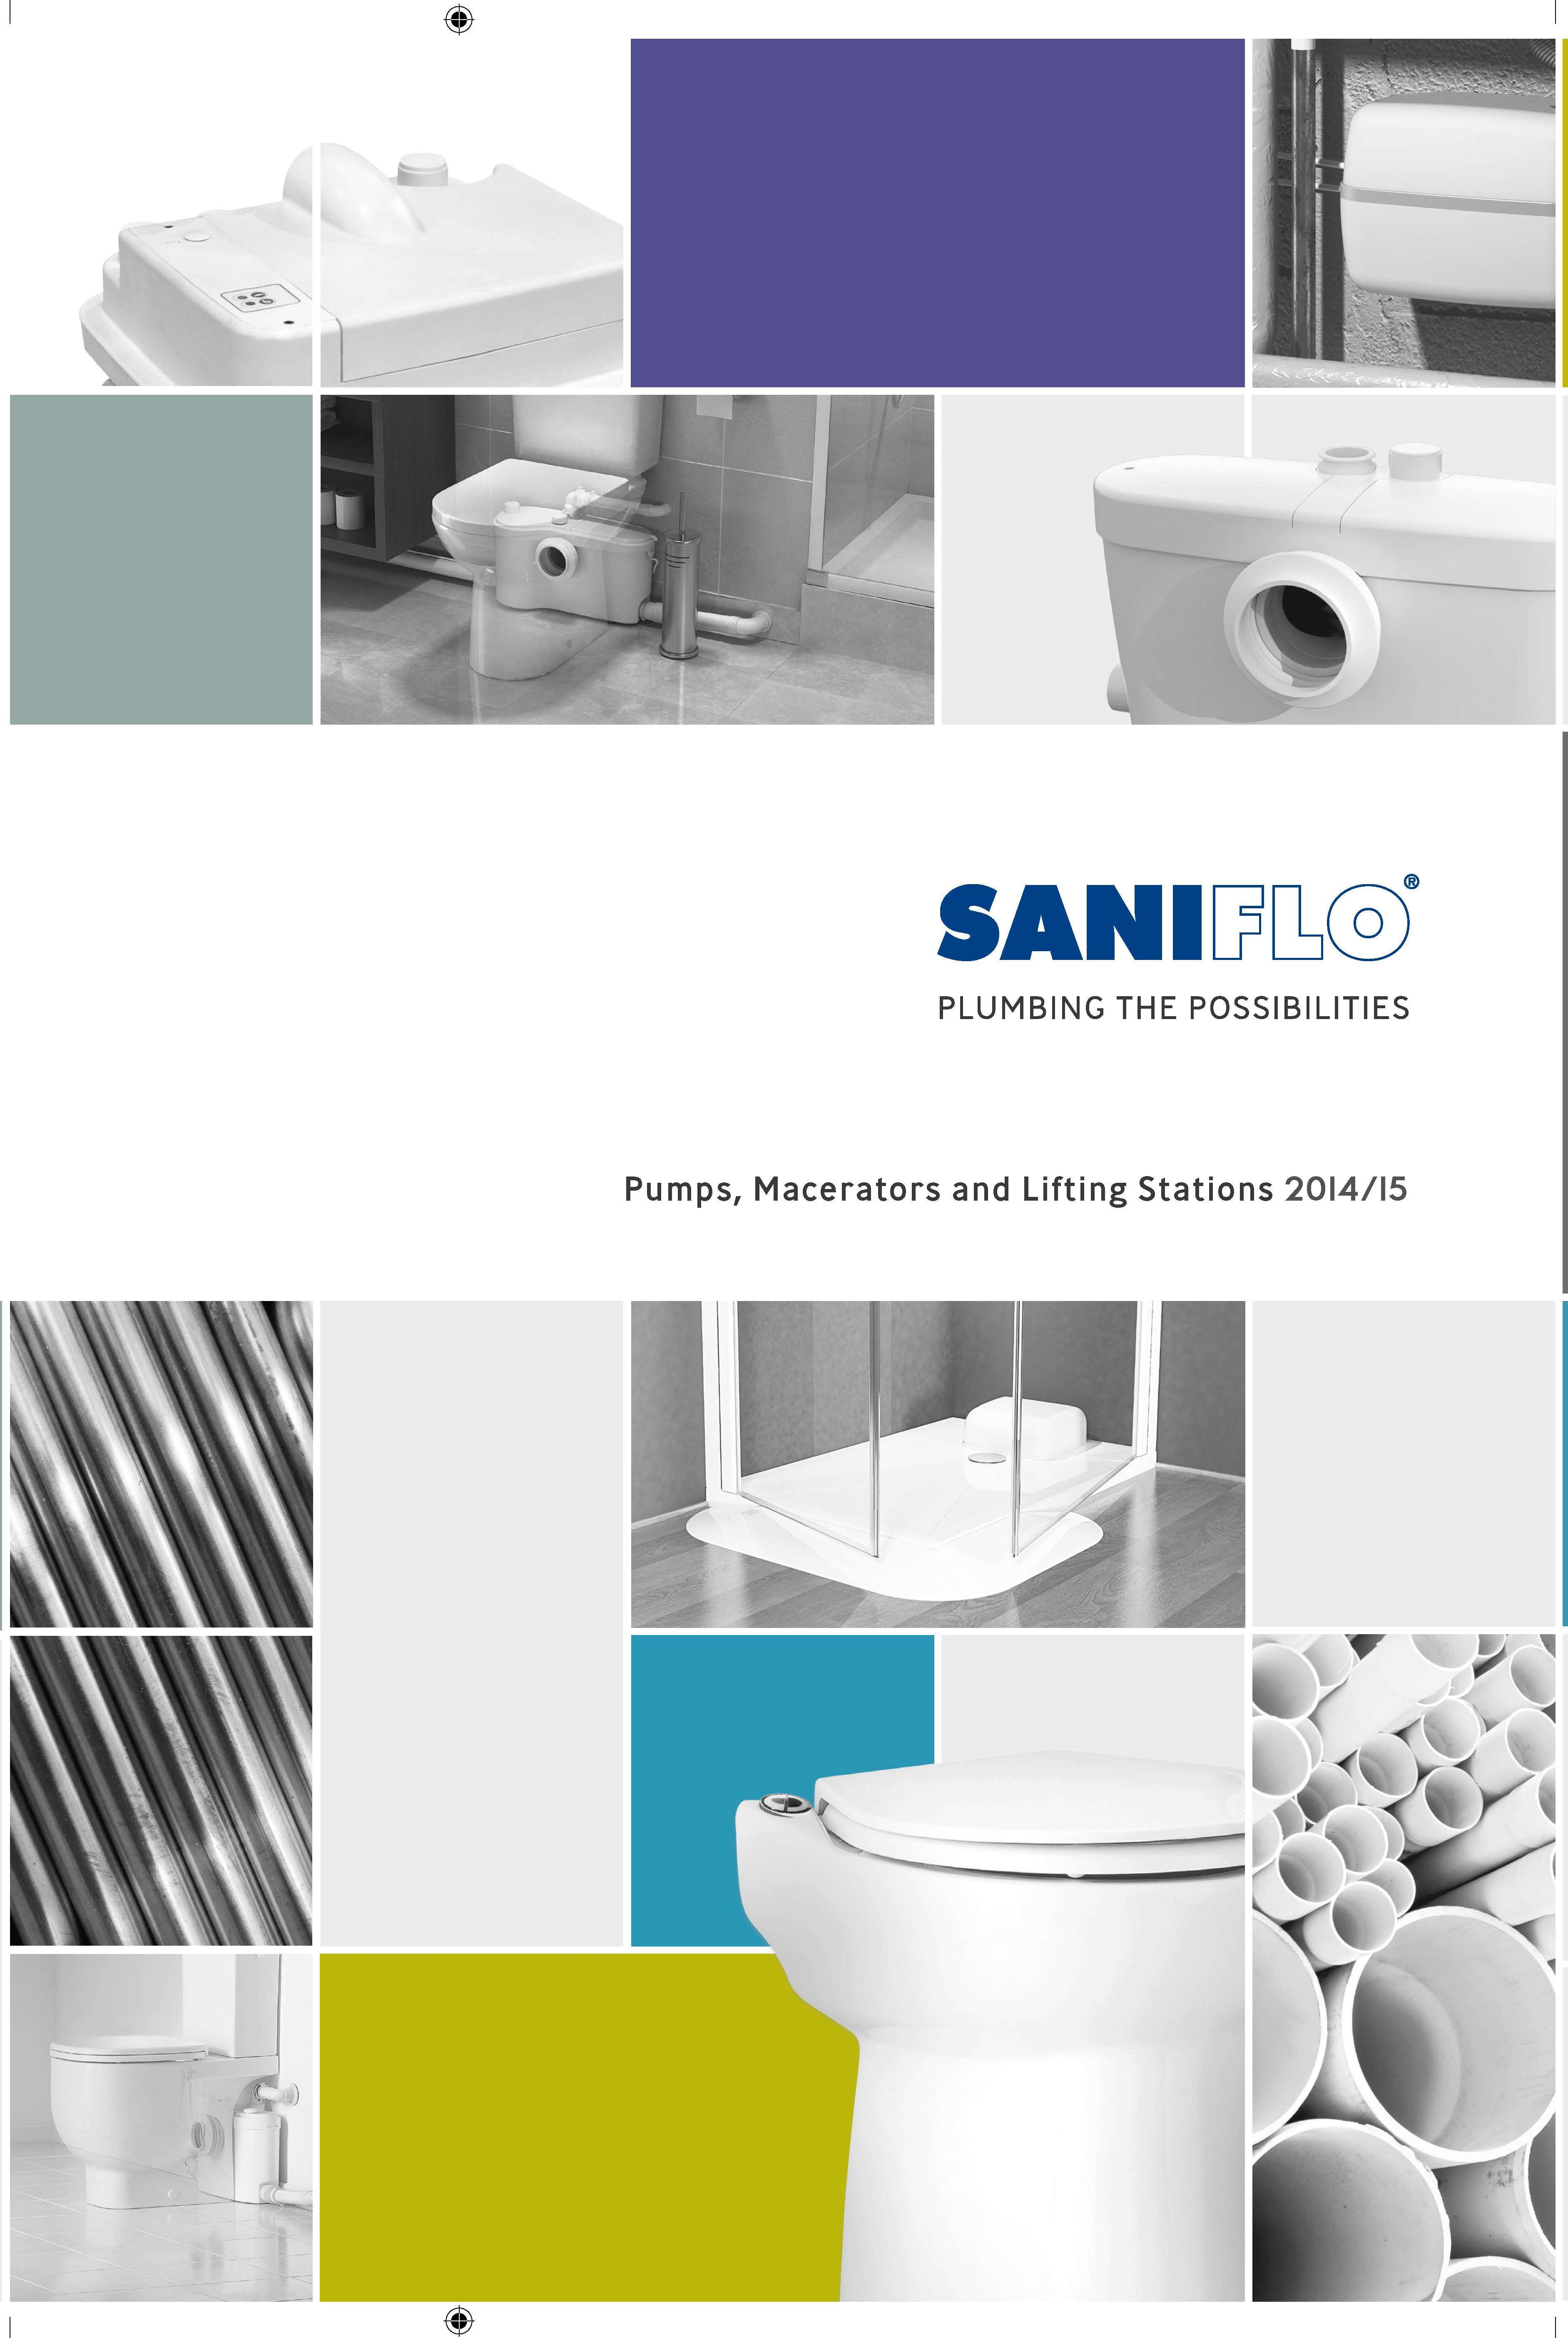 Saniflo Front Cover image